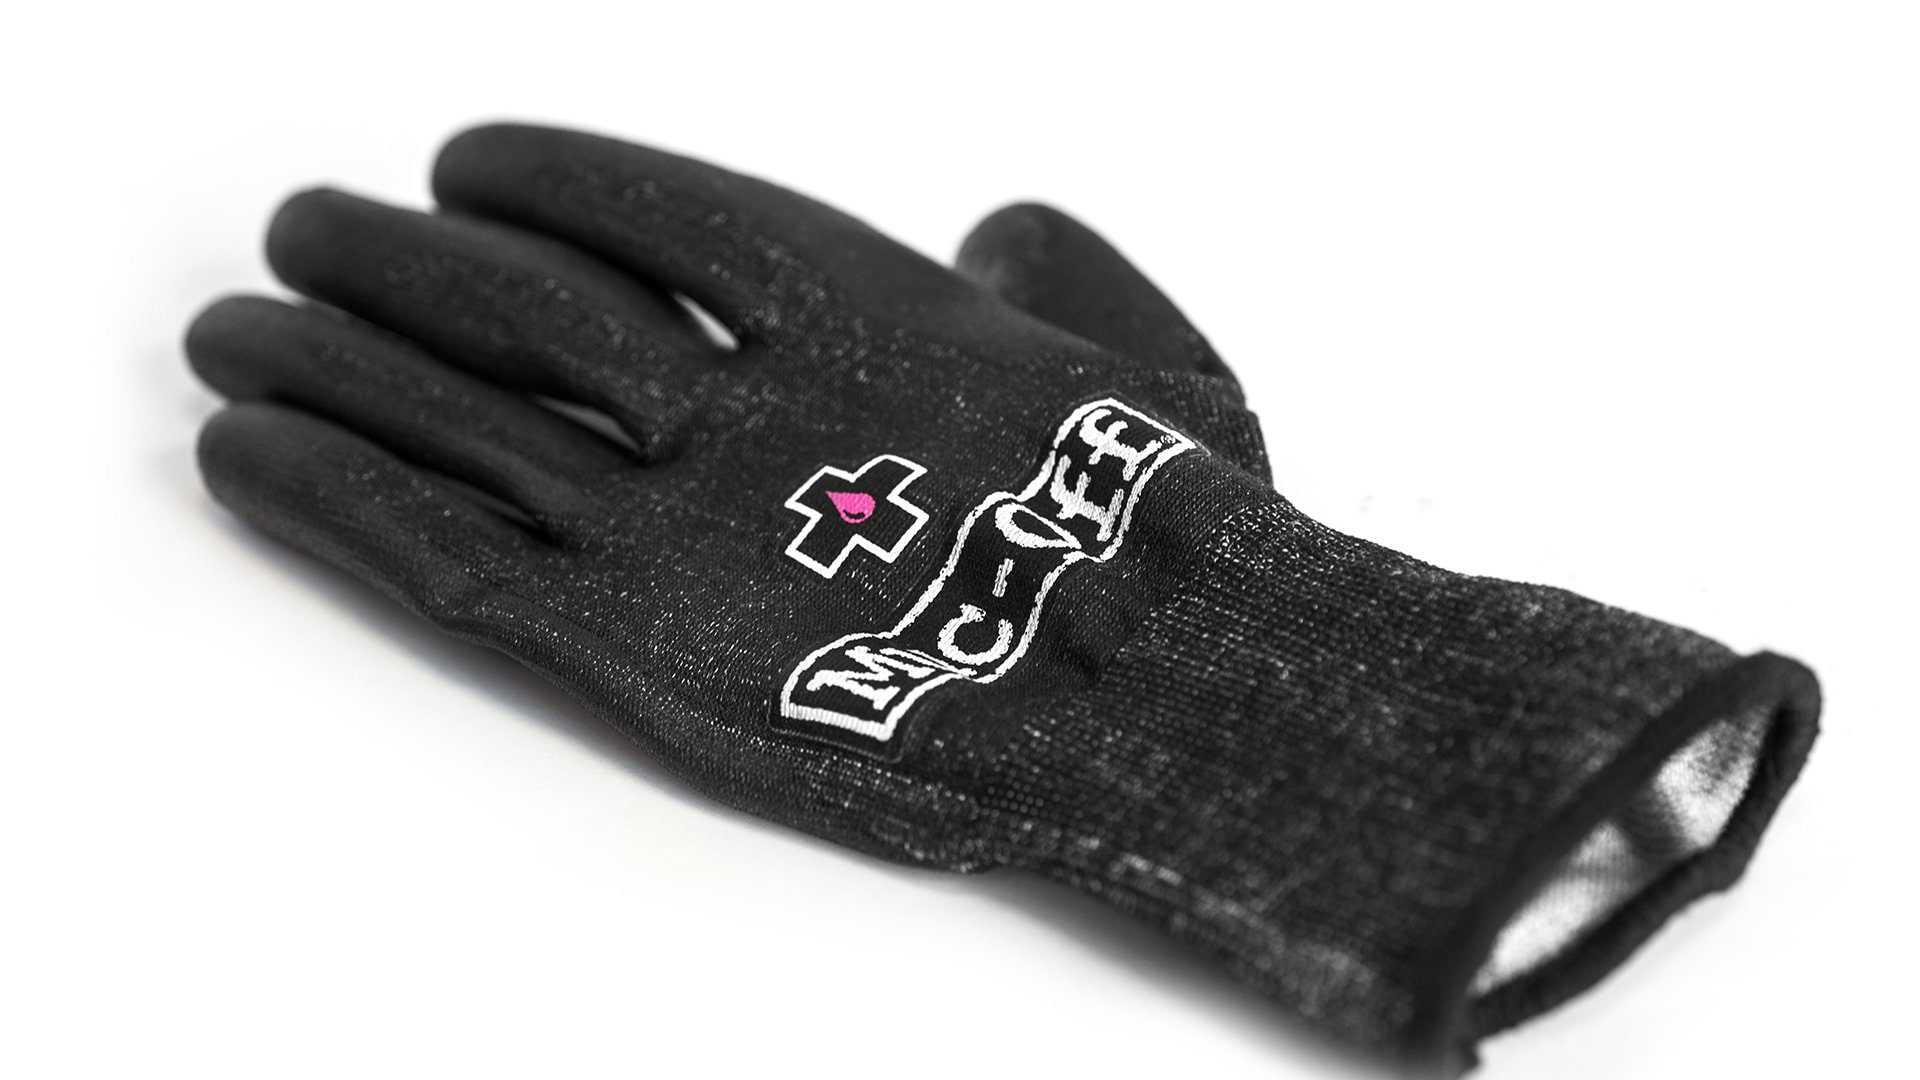 Muc-Off Handskar, Mechanics Gloves